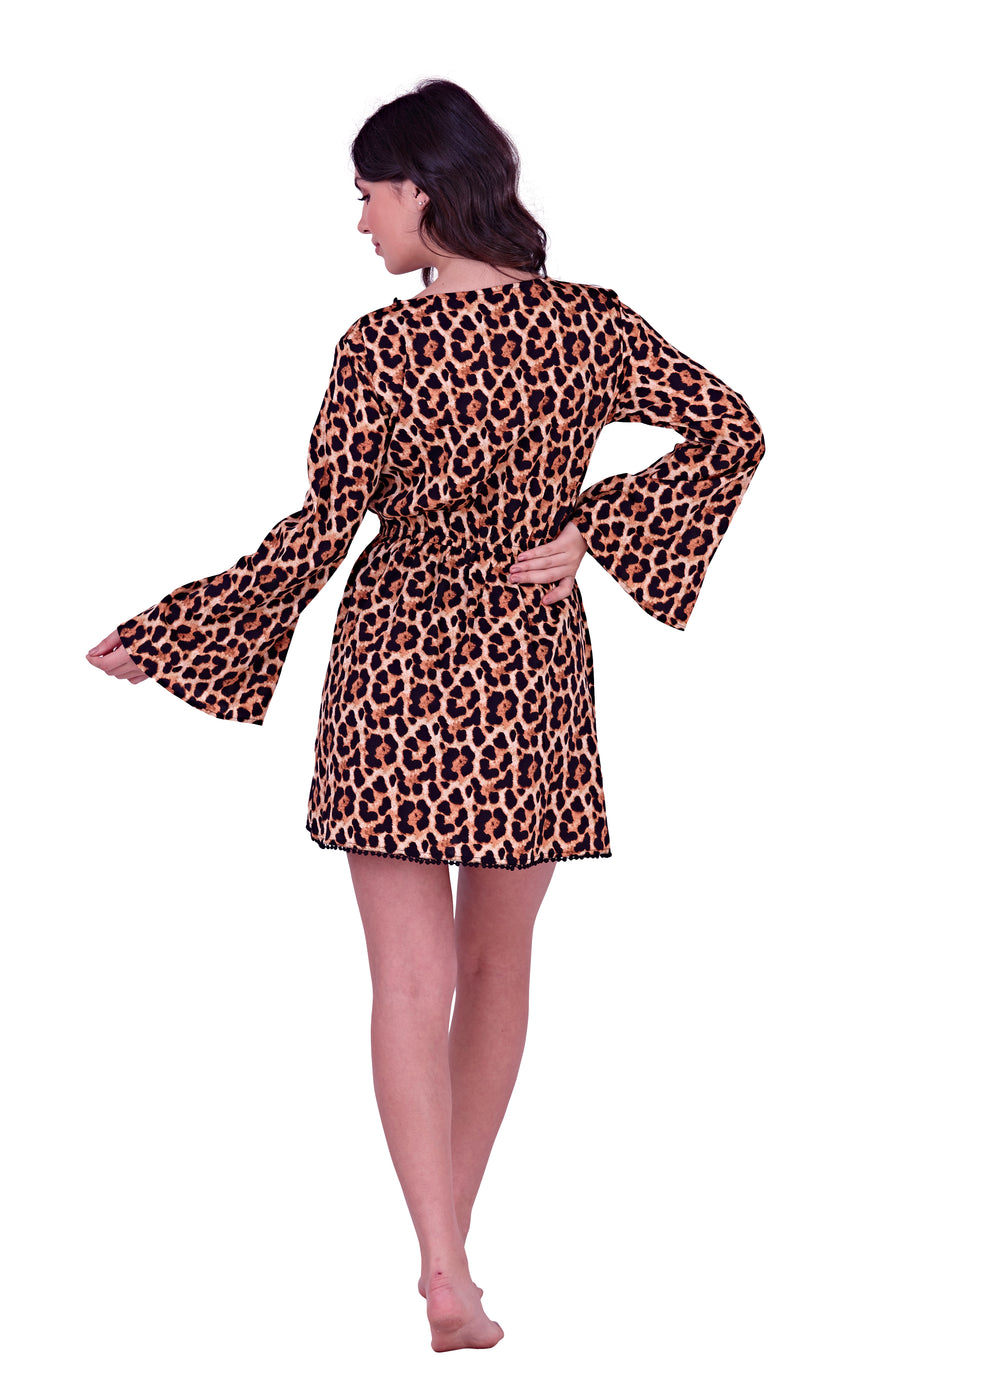 South Beach - Leopard Print Wrap Beach Dress - SB0013-L-F